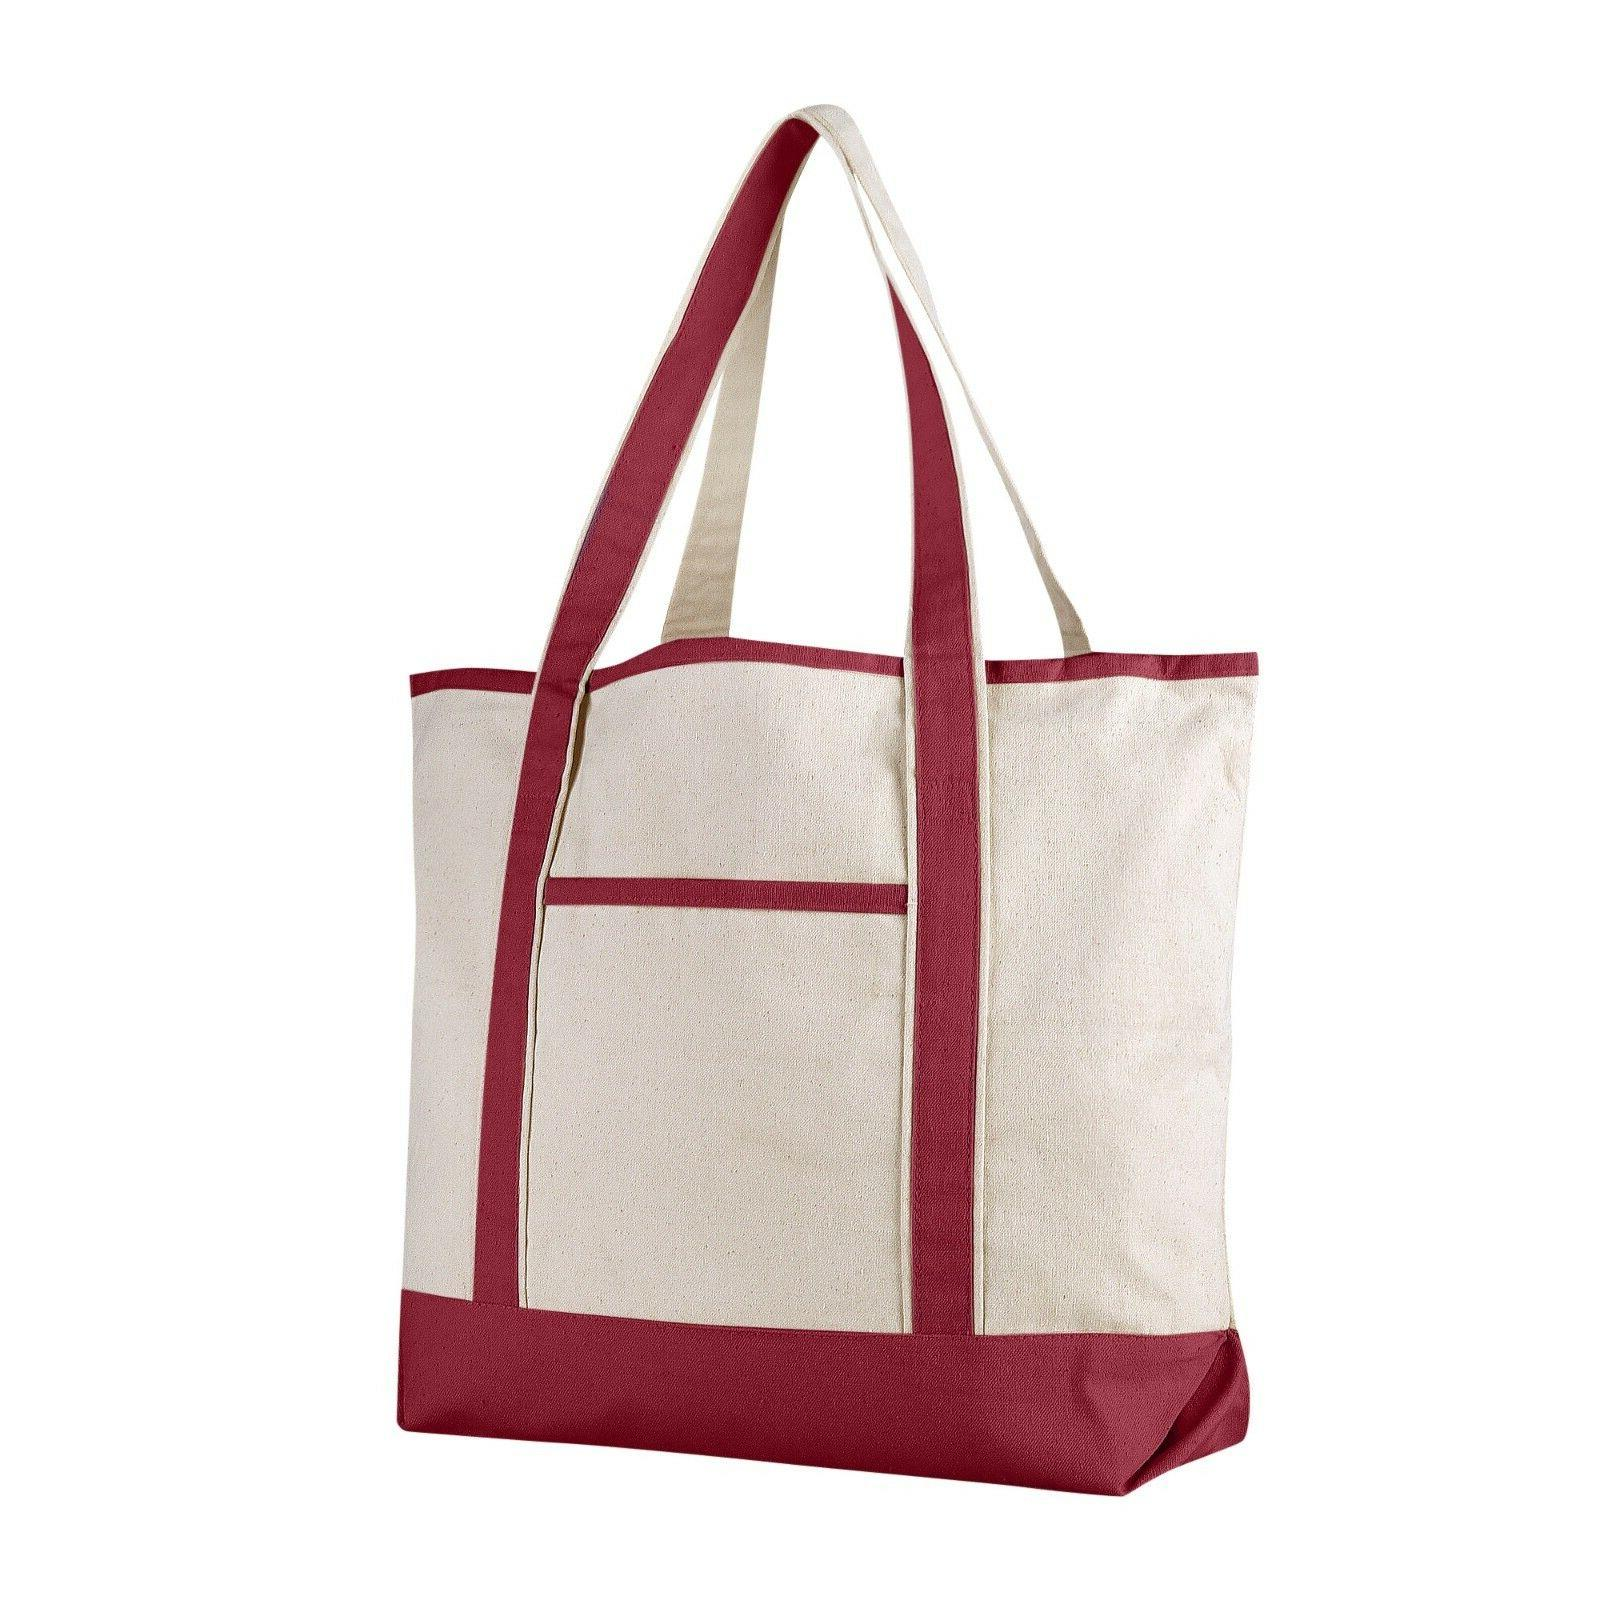 Extra Large Canvas Tote Bag, for Beach, Work